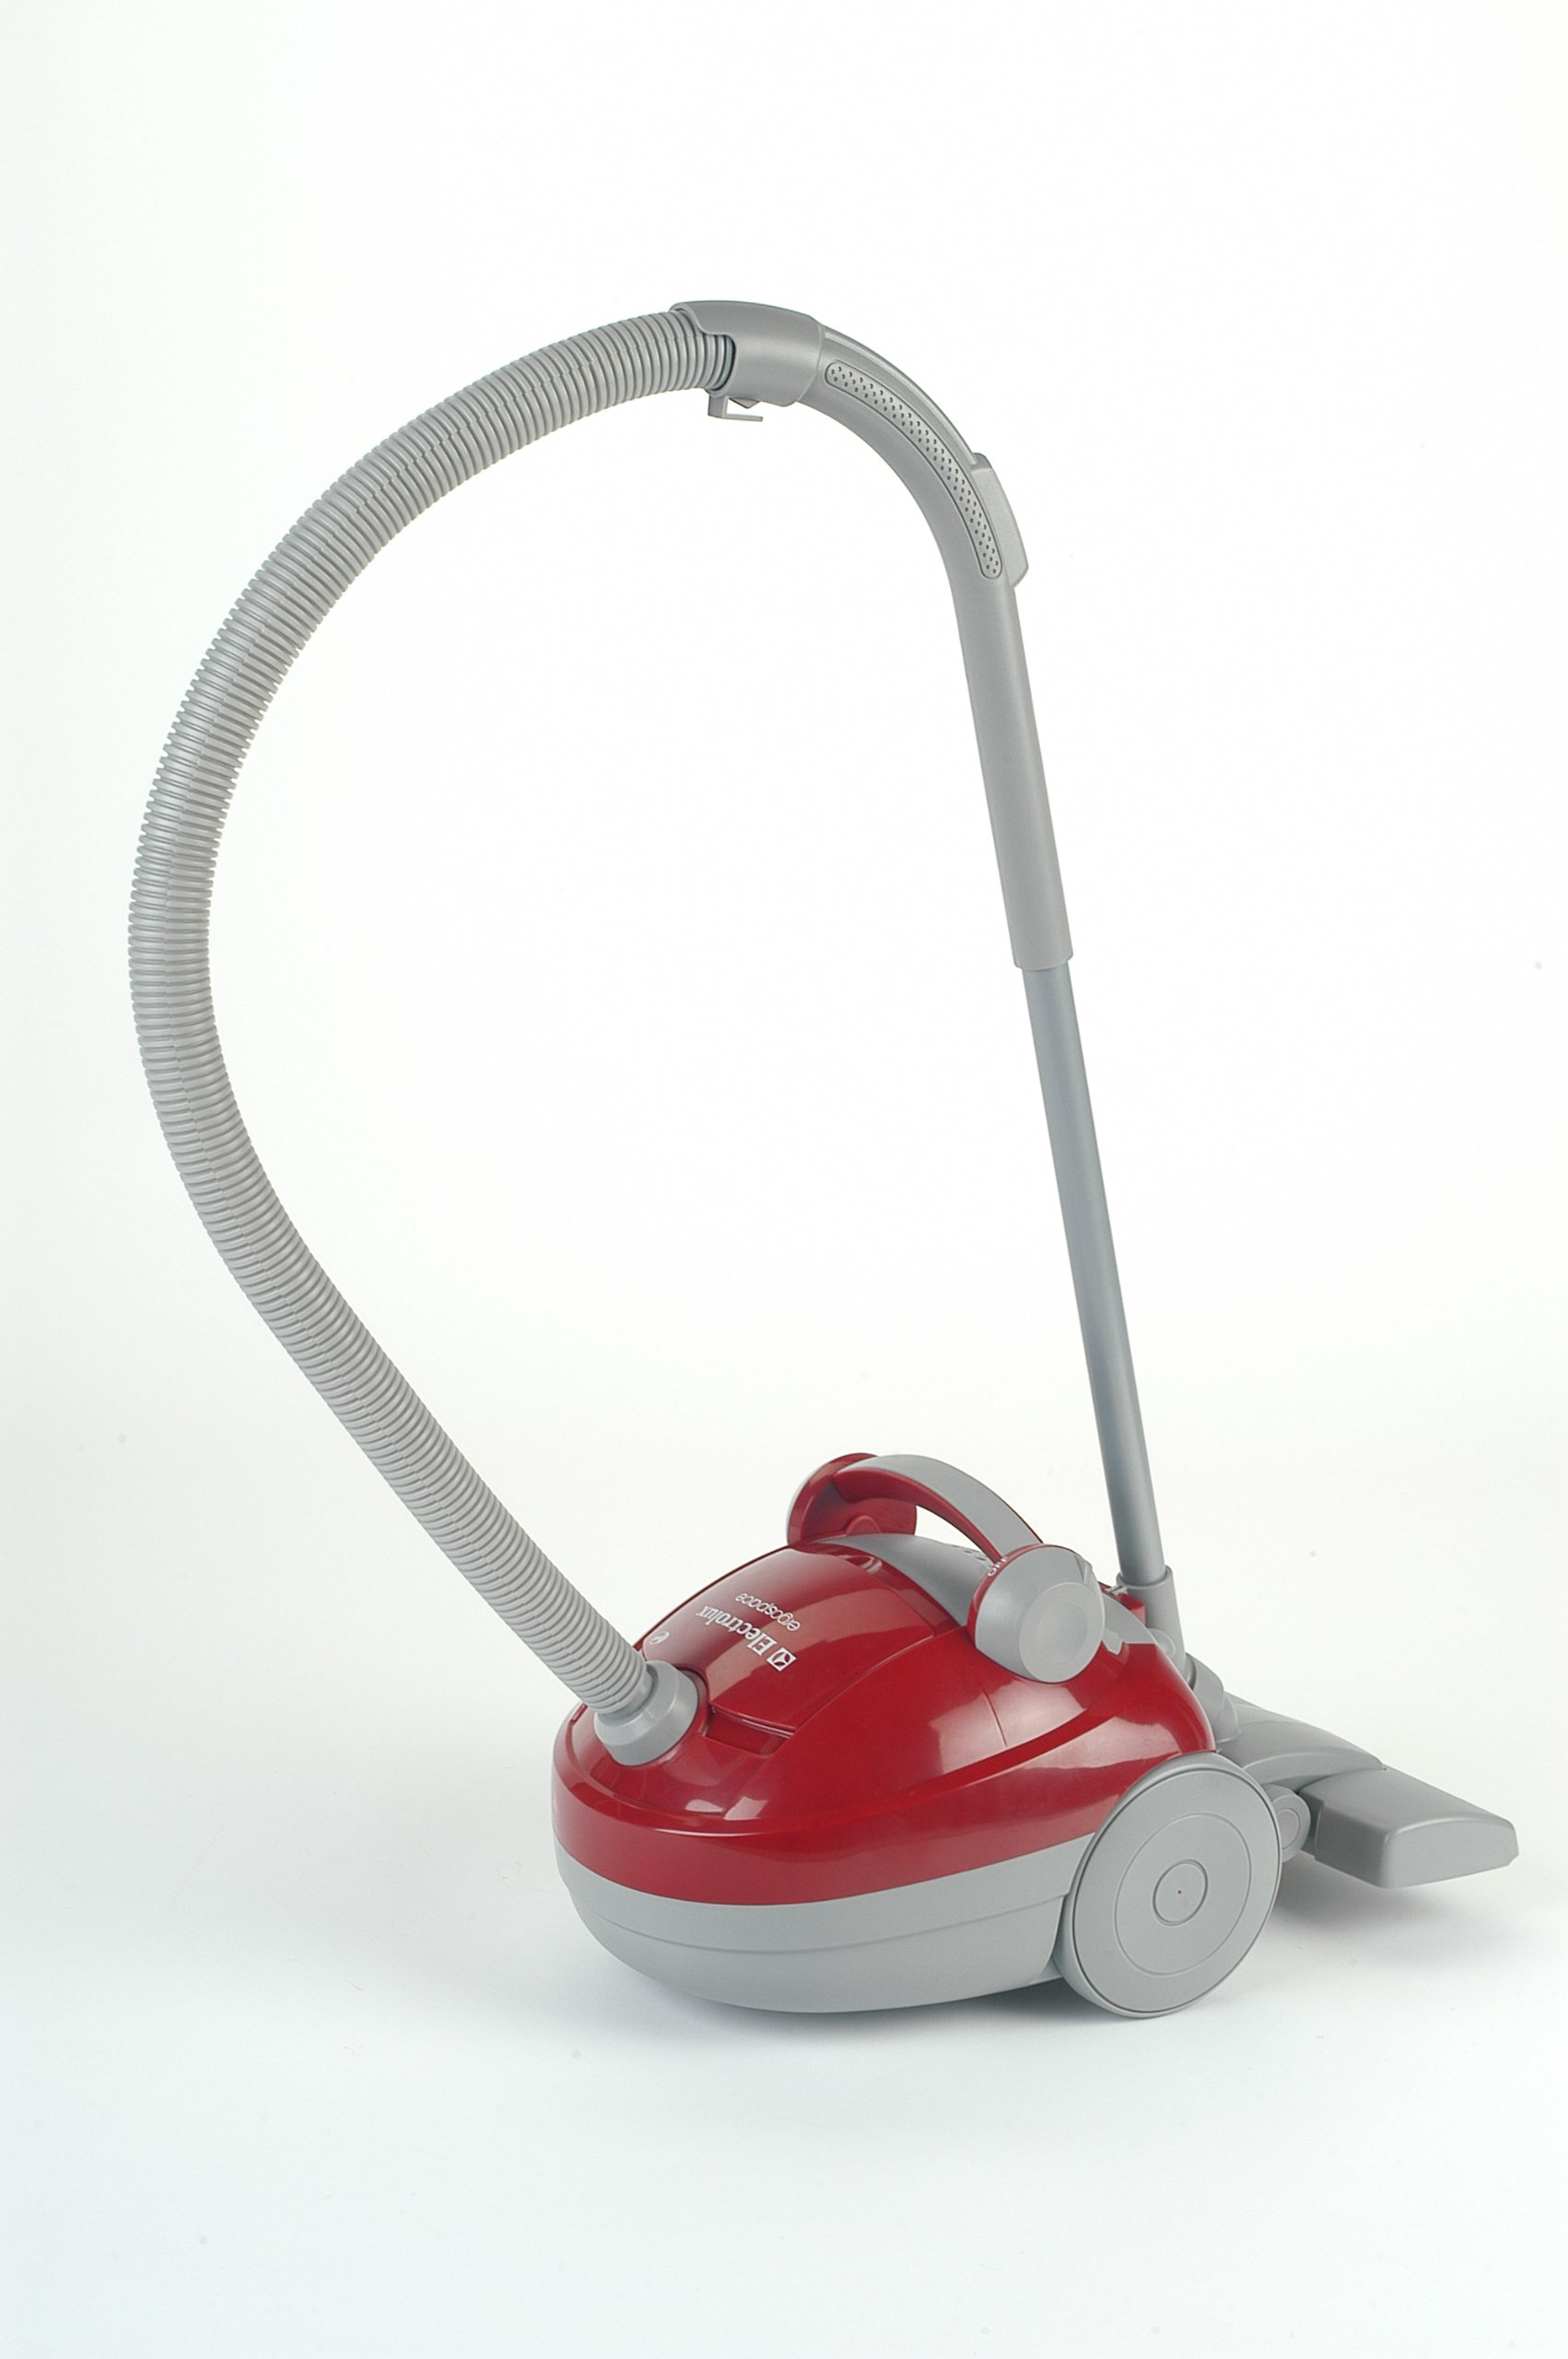 Theo Klein Electrolux Toy Vacuum Cleaner